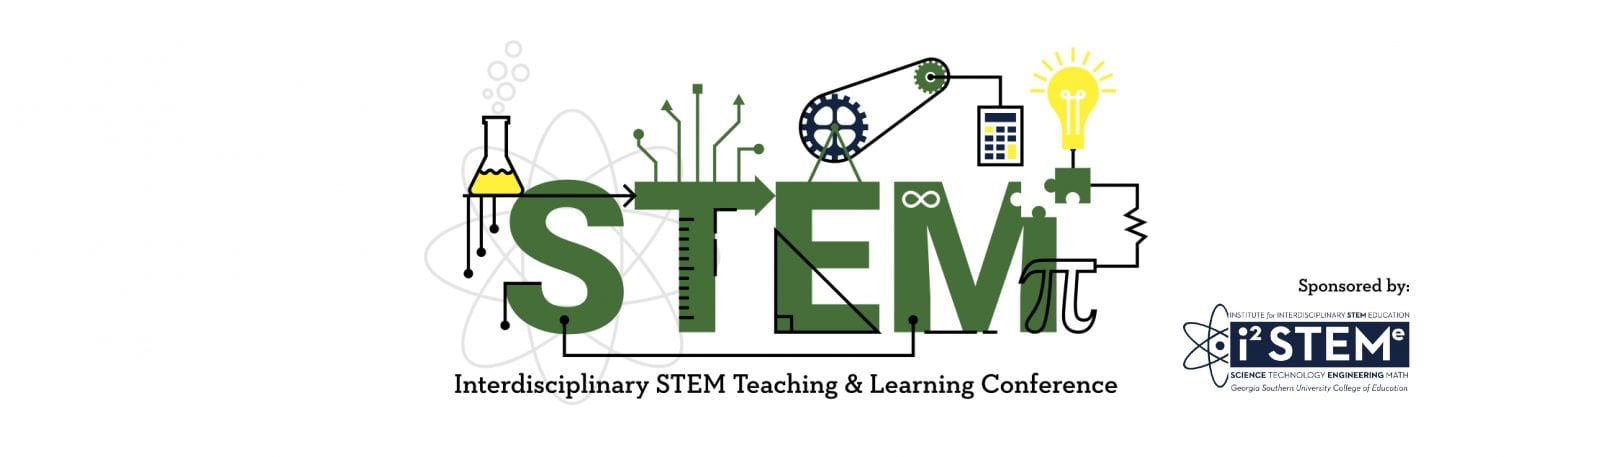 Interdisciplinary STEM Teaching and Learning Conference